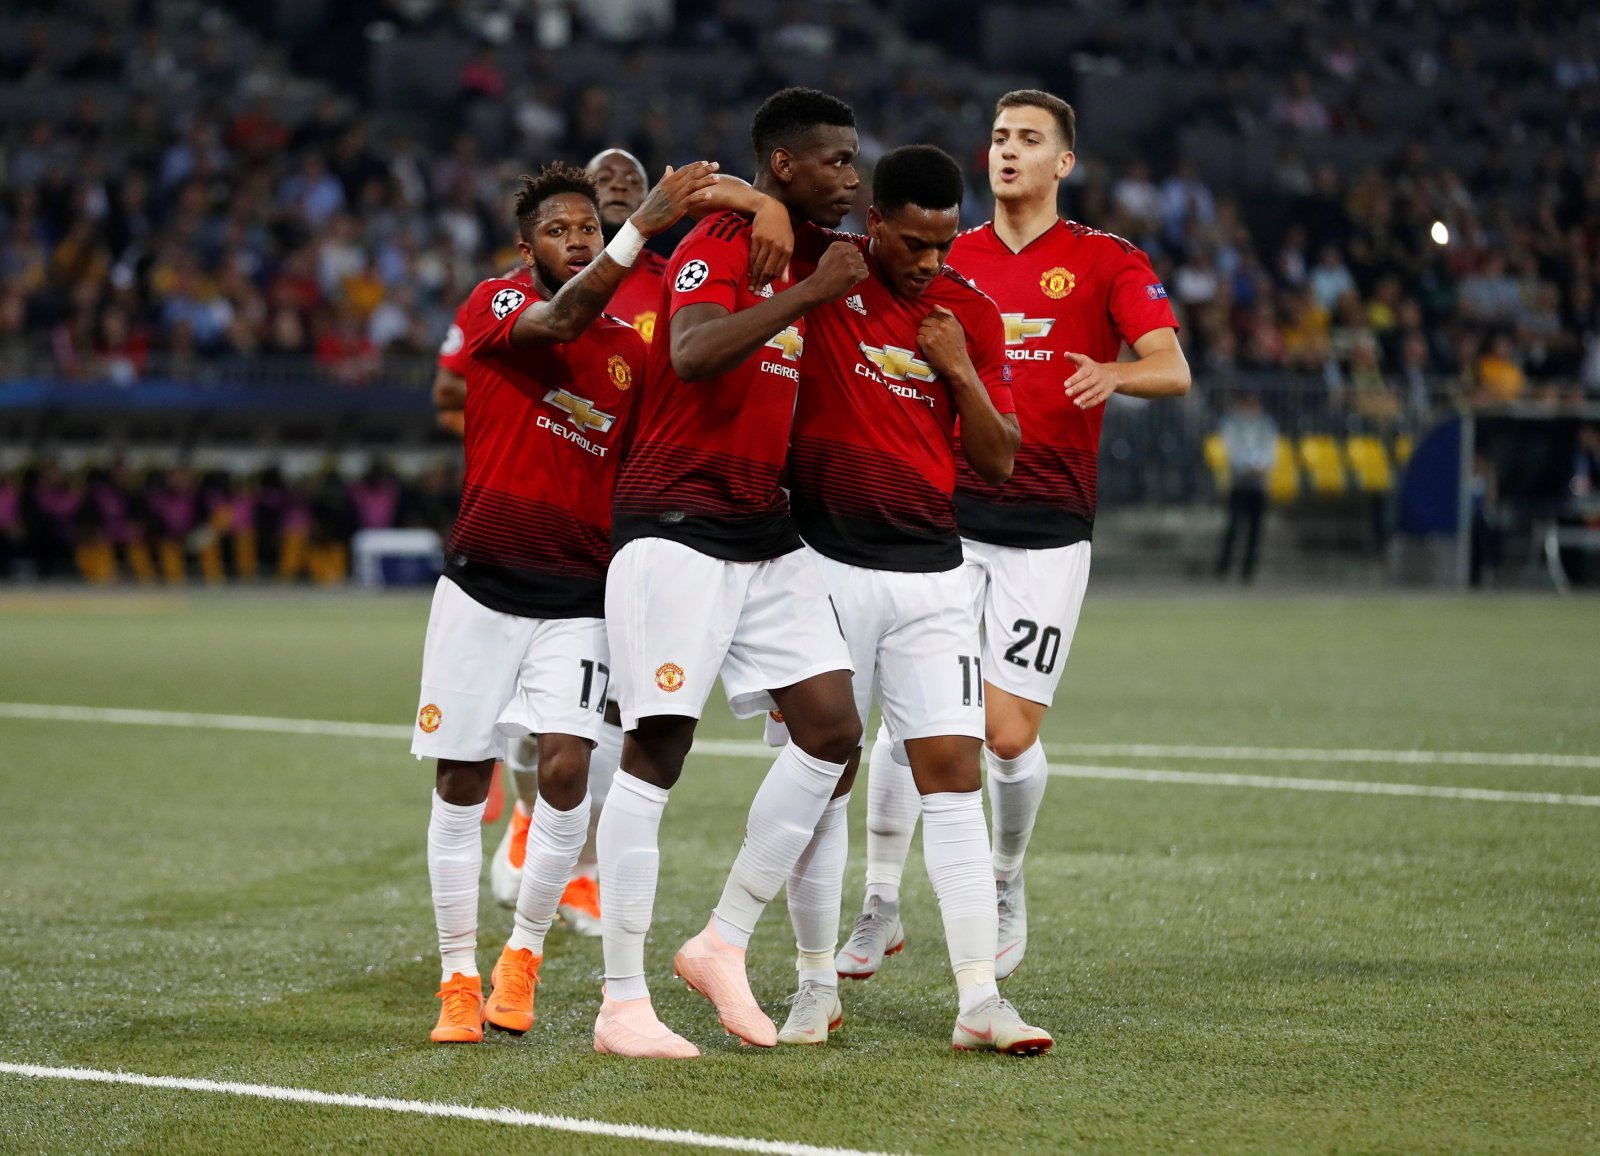 Man Utd fans want Diogo Dalot to start against Derby County